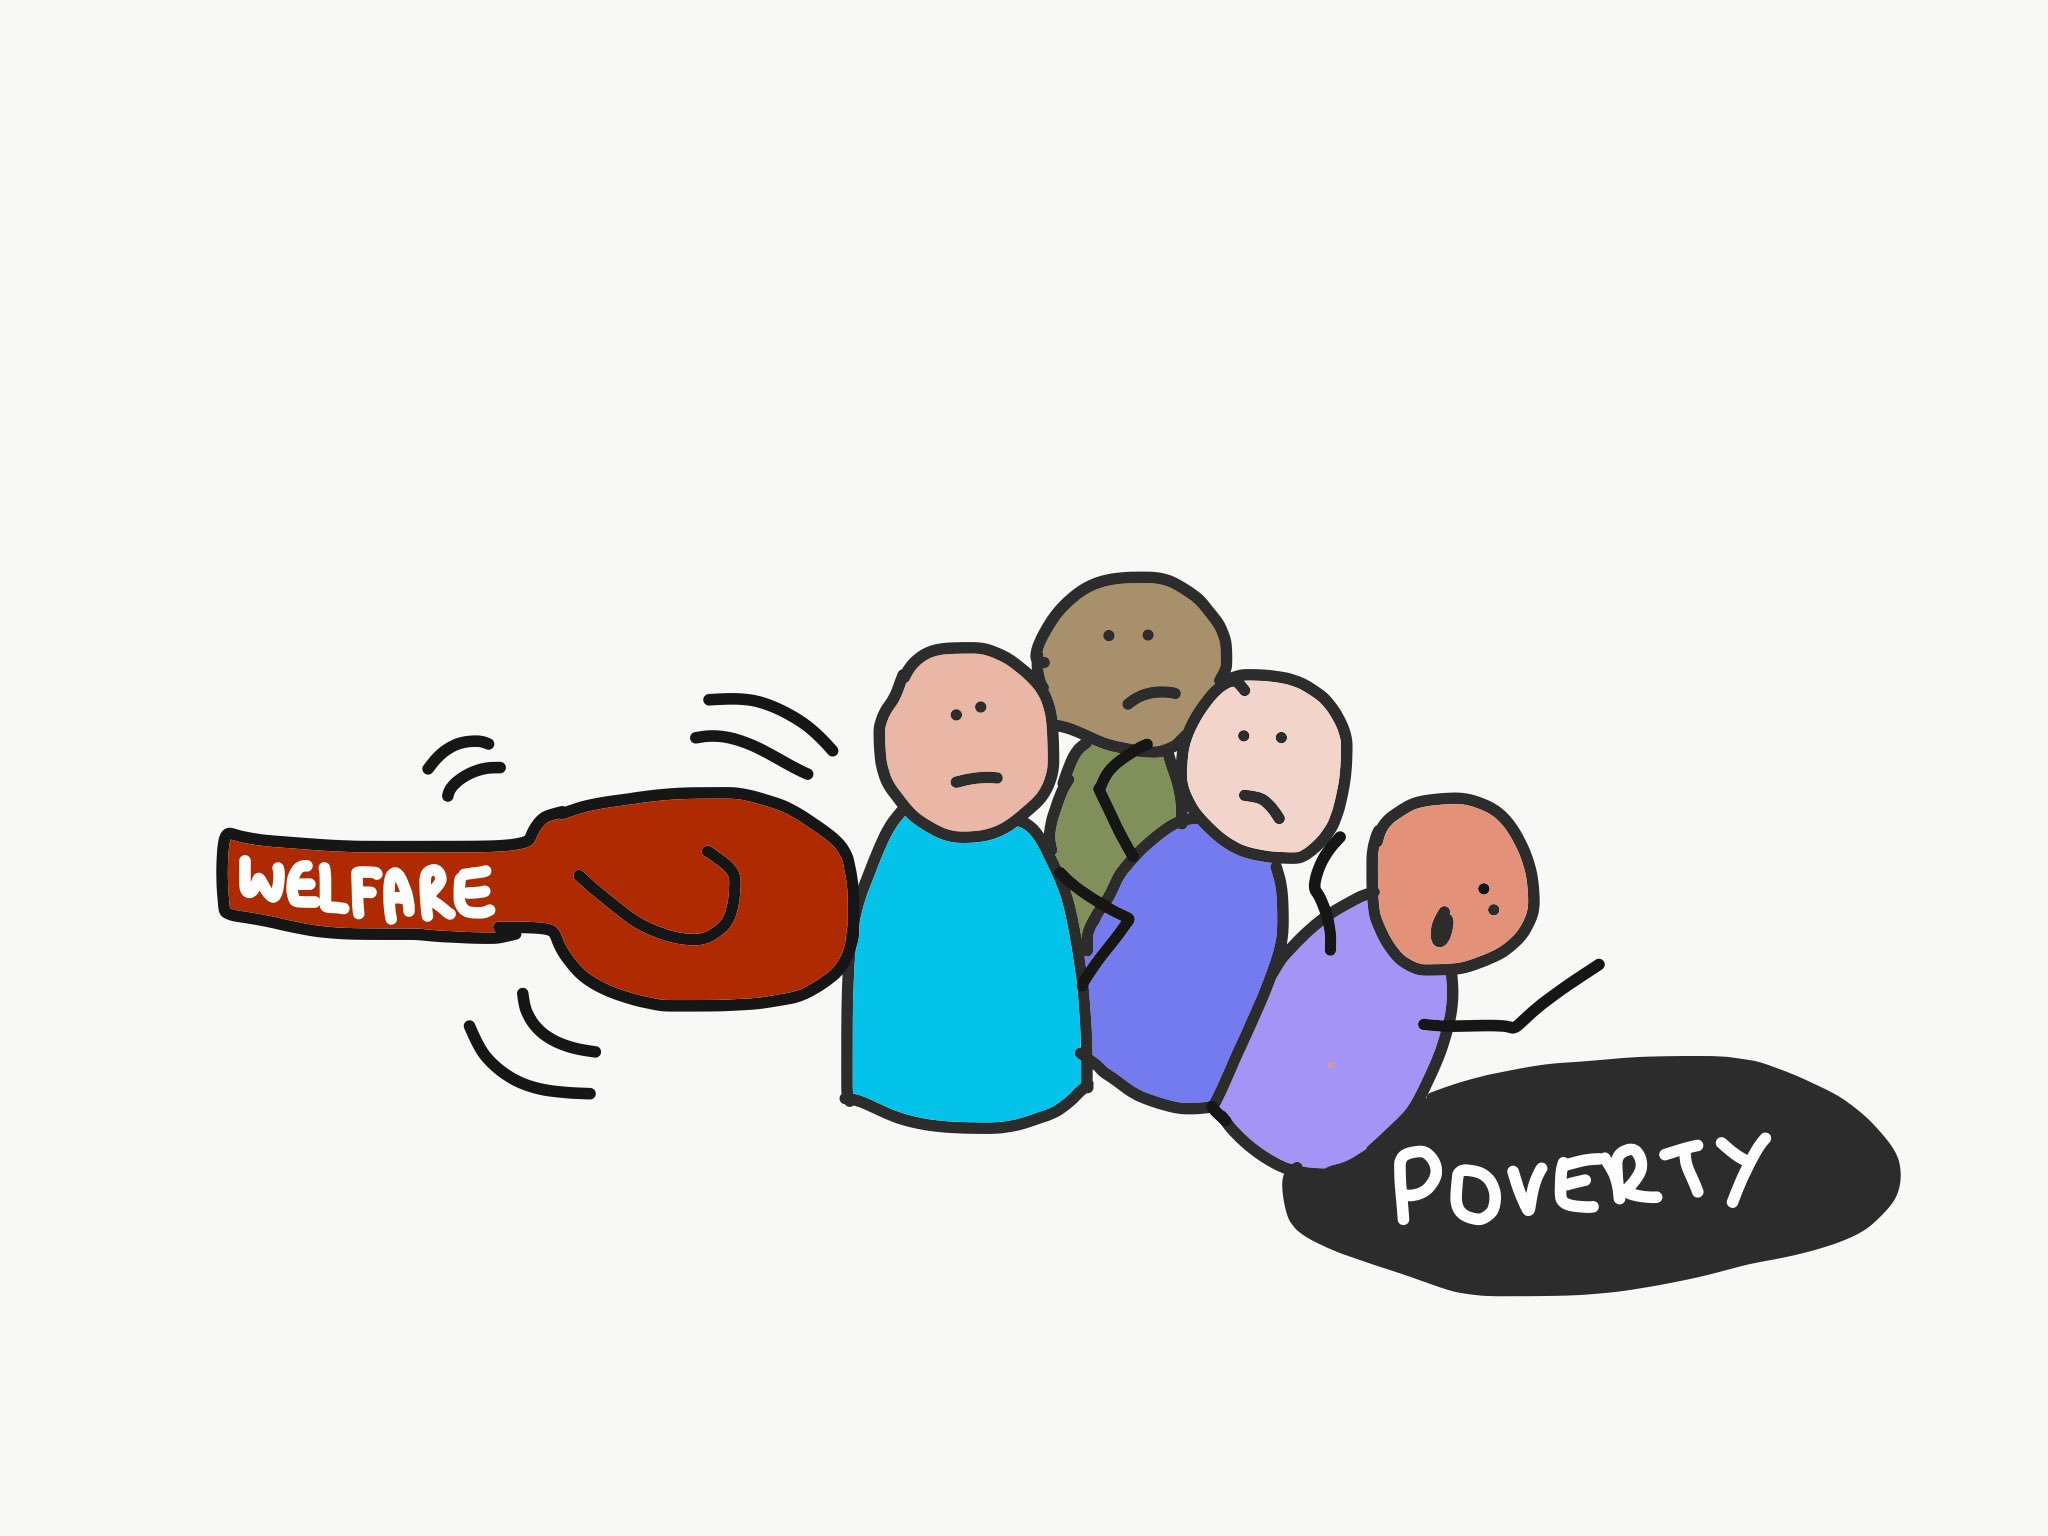 Welfare shake up is pushing more people into poverty. From Prof Dave Hill at #aldcon https://t.co/lDNmTOuRrF